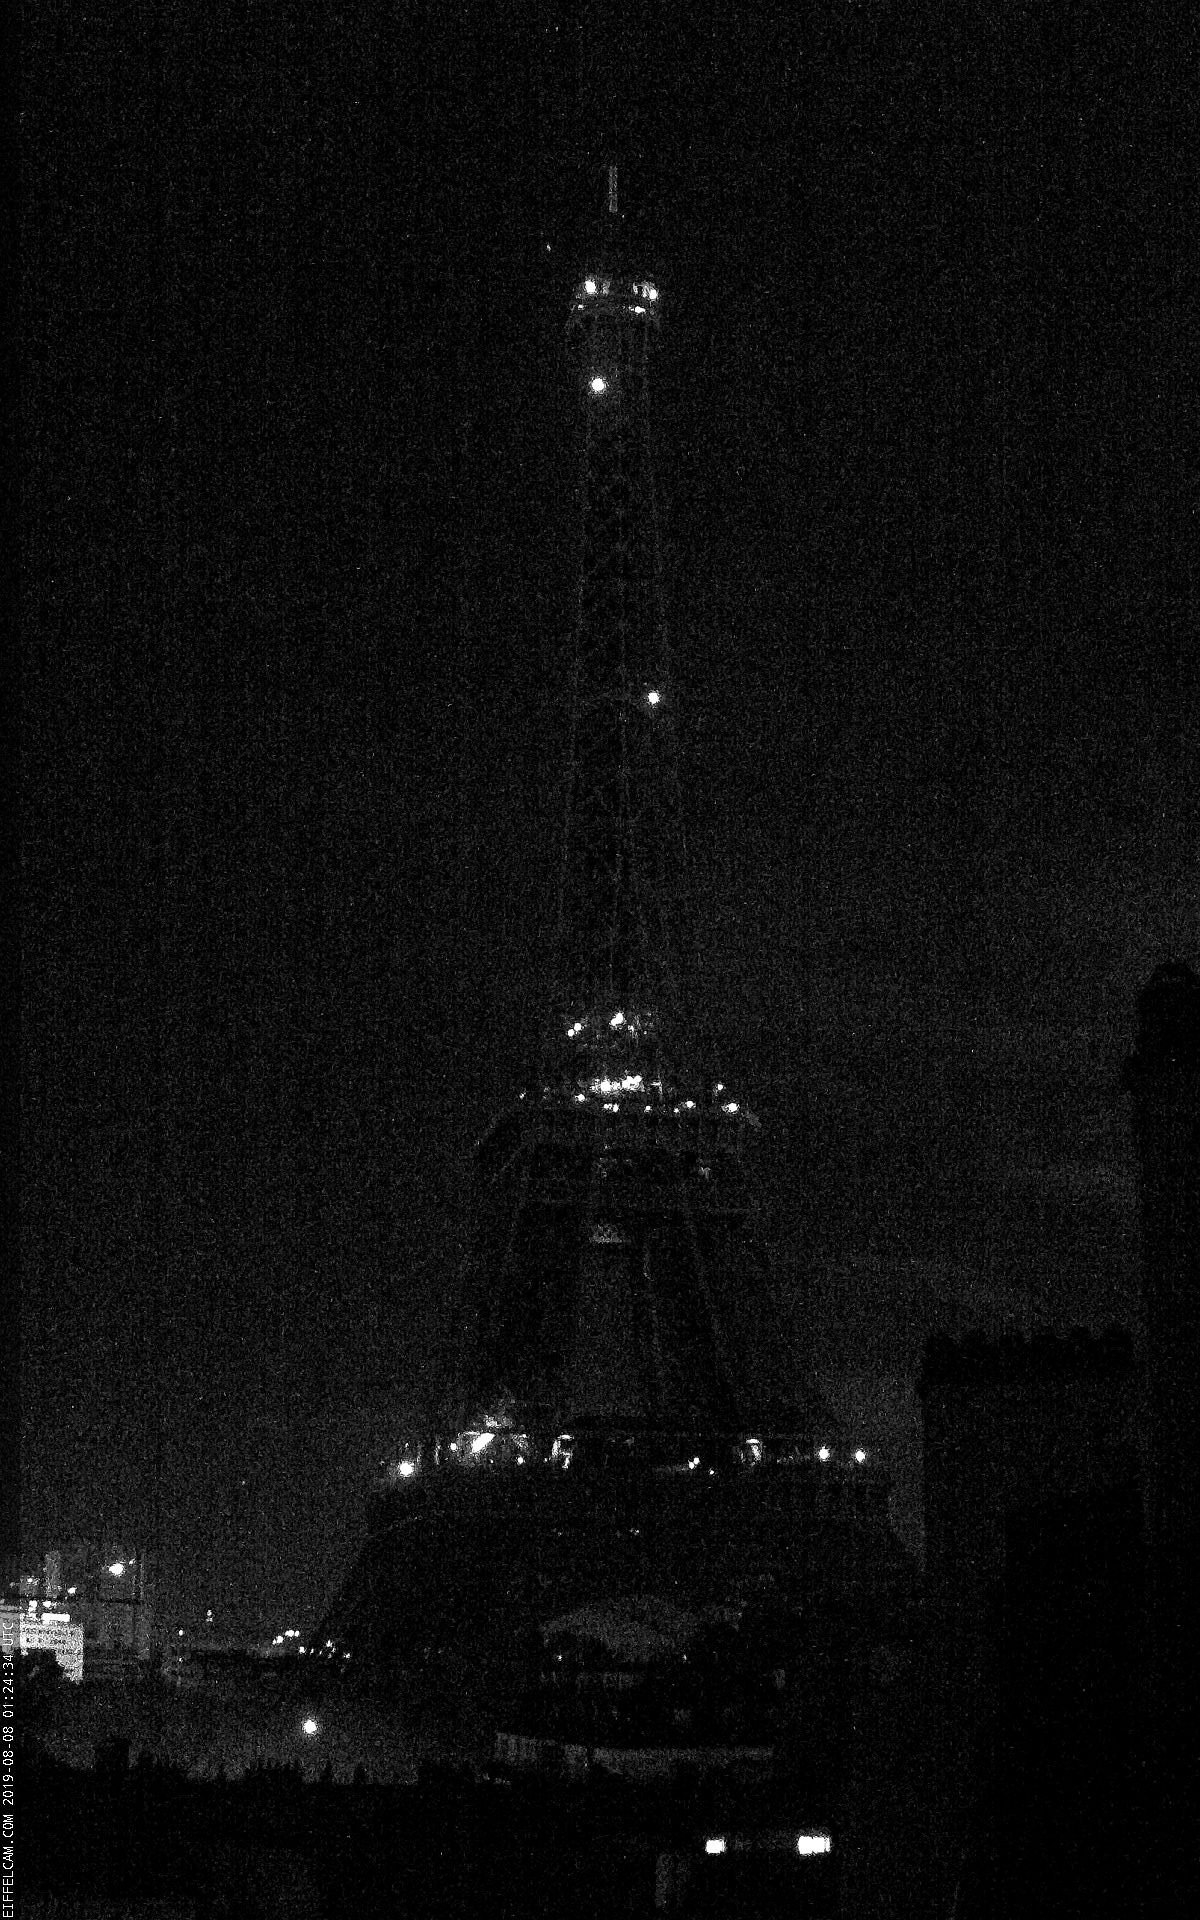 Webcam de Paris et de la Tour Eiffel météopassion